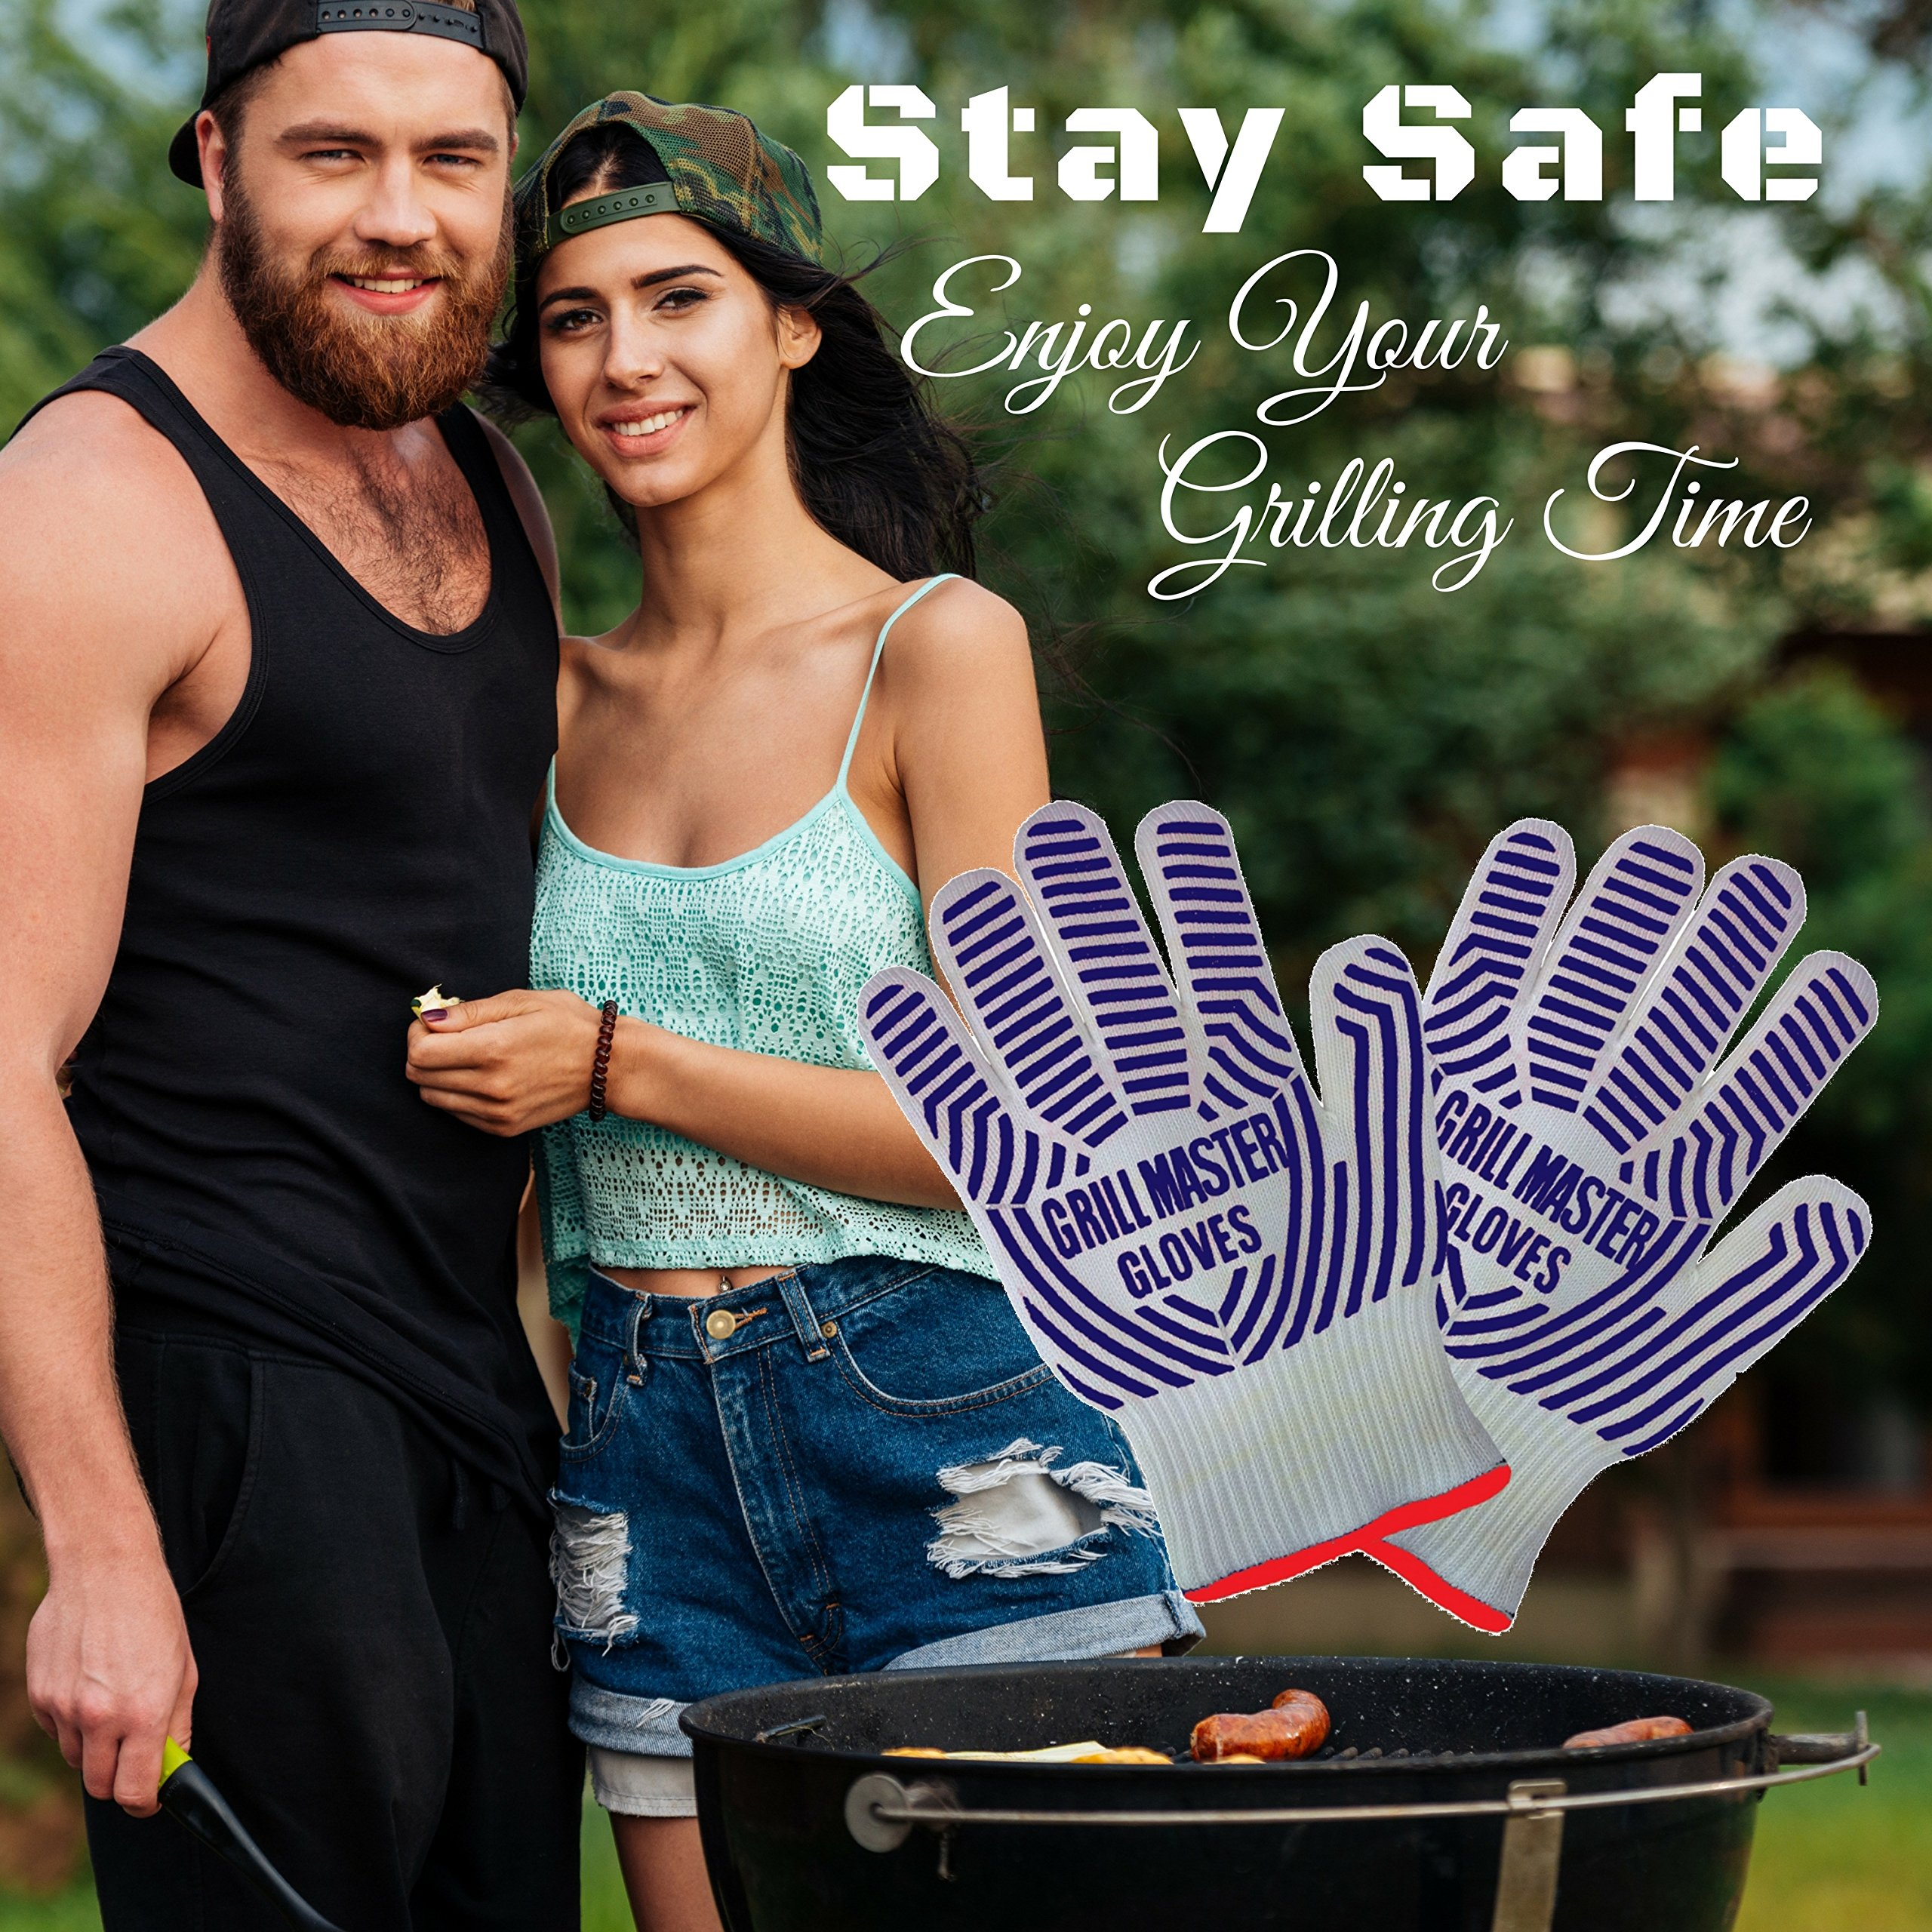 Grill Gloves Heat Resistant Extreme BBQ Gloves Oven Gloves Rated to 932f - Ideal Grilling Gloves by Grill Master (Black) by Grill Master Gloves (Image #3)